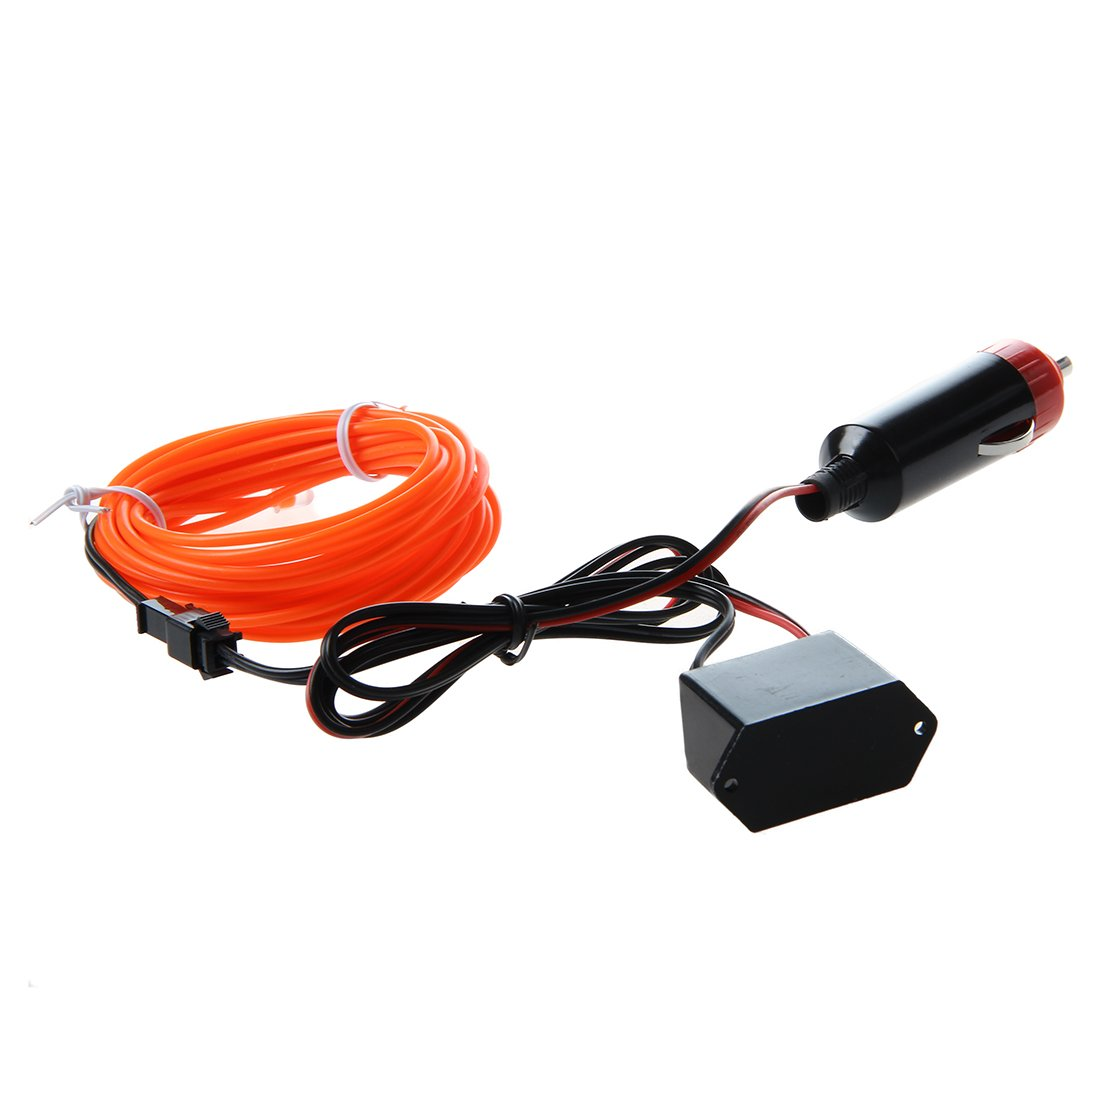 SODIAL(R) LED Flexible EL Wire Neon Glow Tube Lamp Light DC 12V Inverter for Car, 3M Orange 084479B6